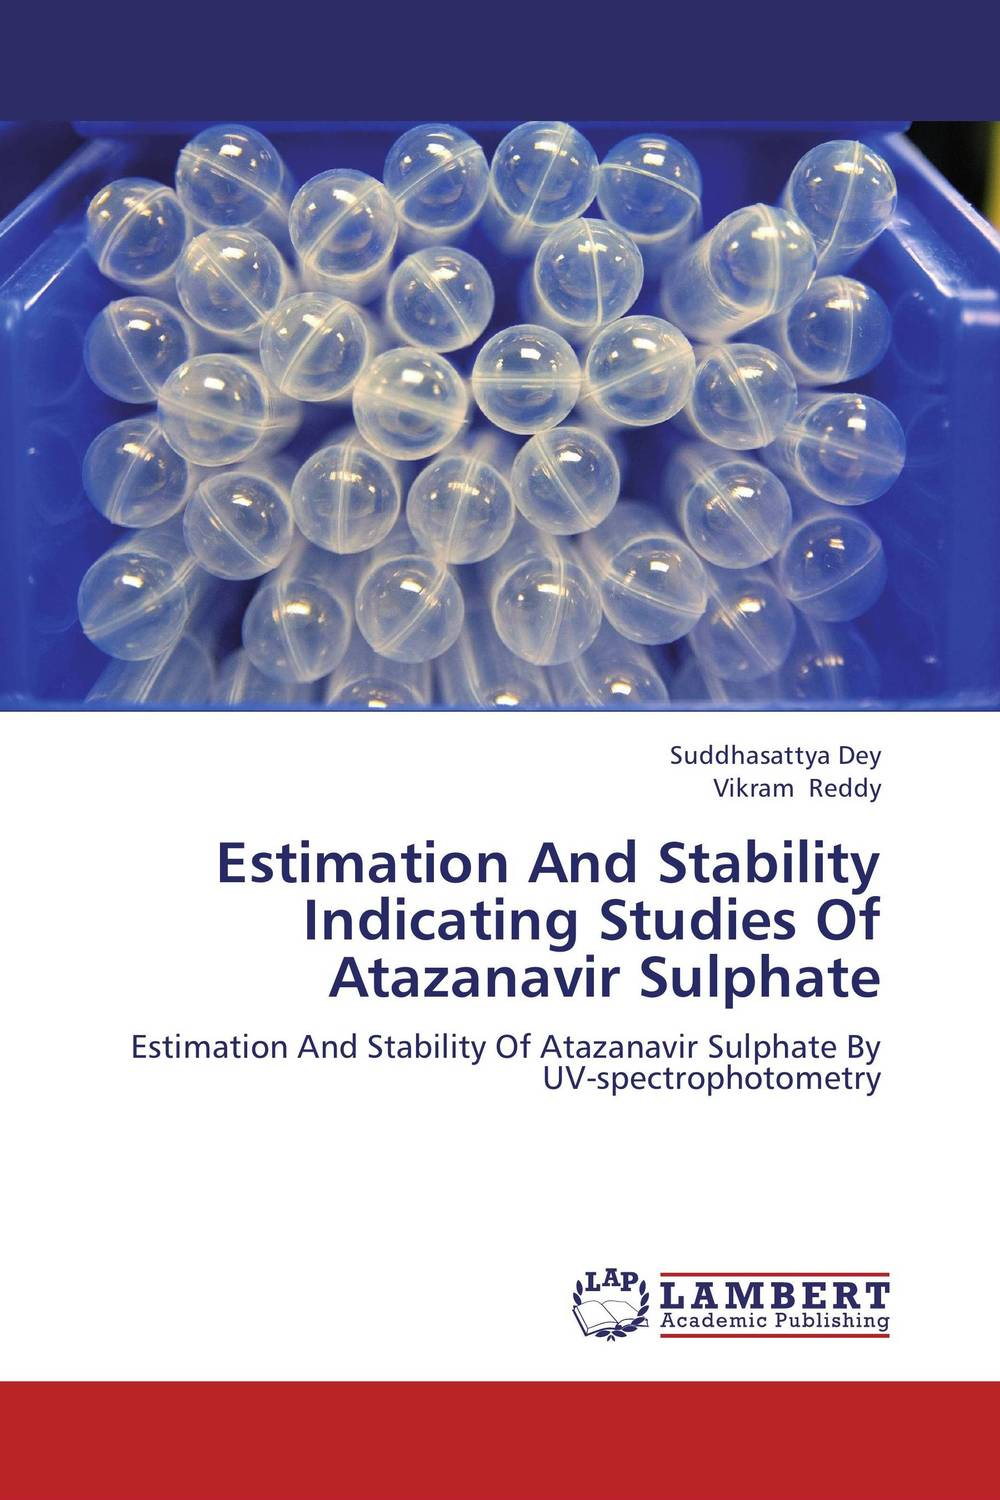 Estimation And Stability Indicating Studies Of Atazanavir Sulphate